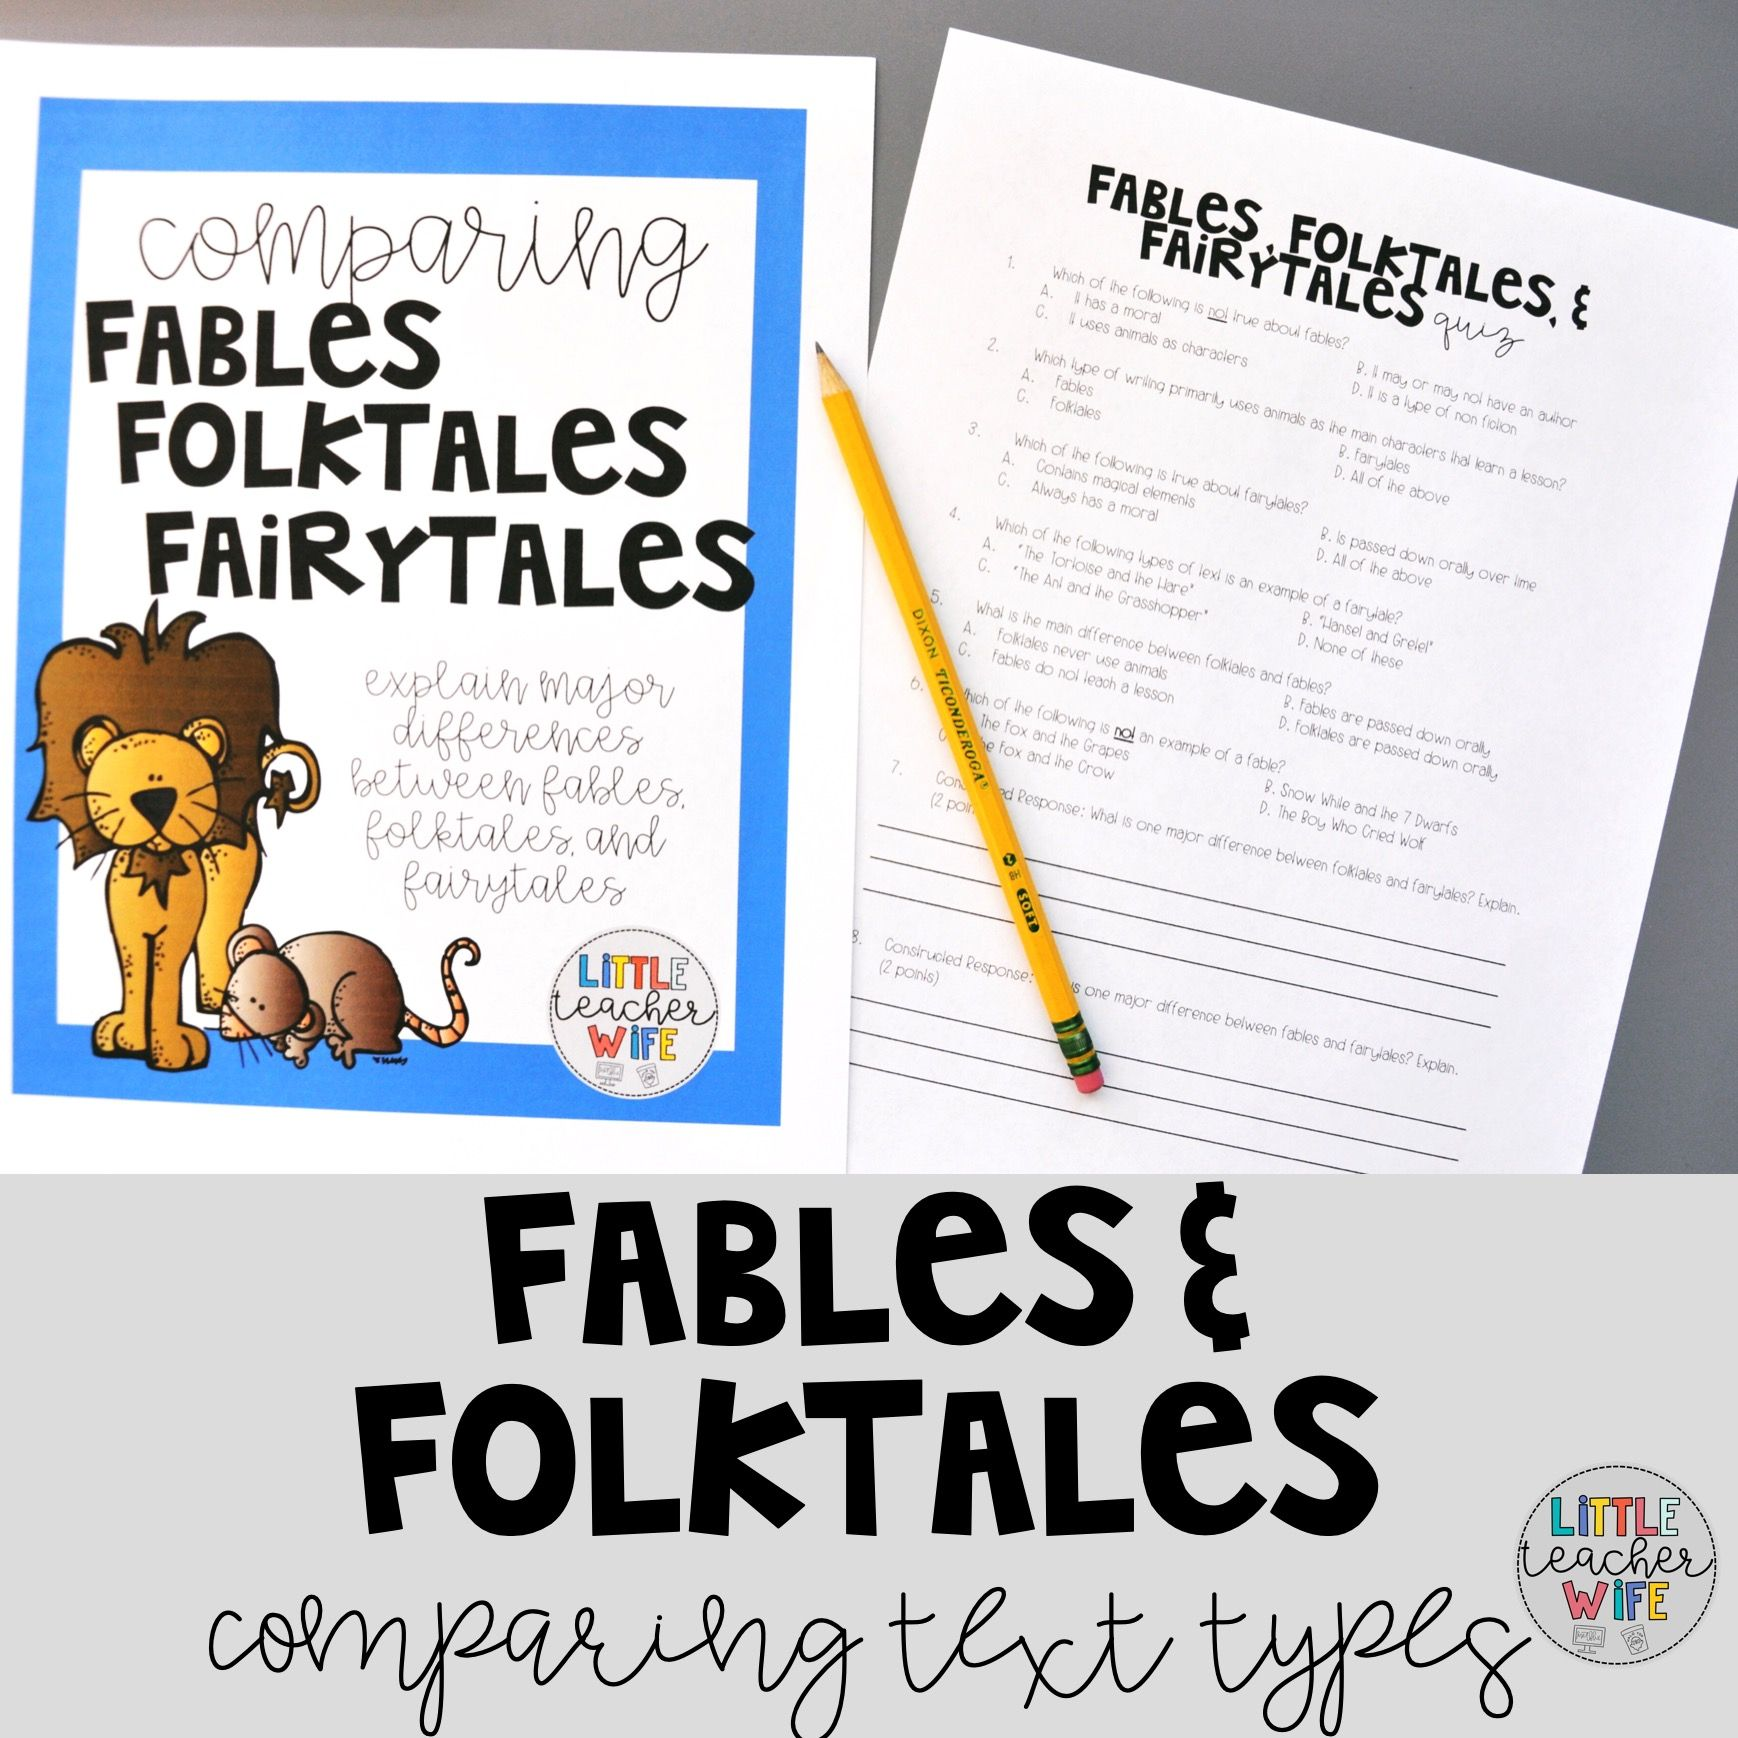 Fables Folktales And Fairytales In